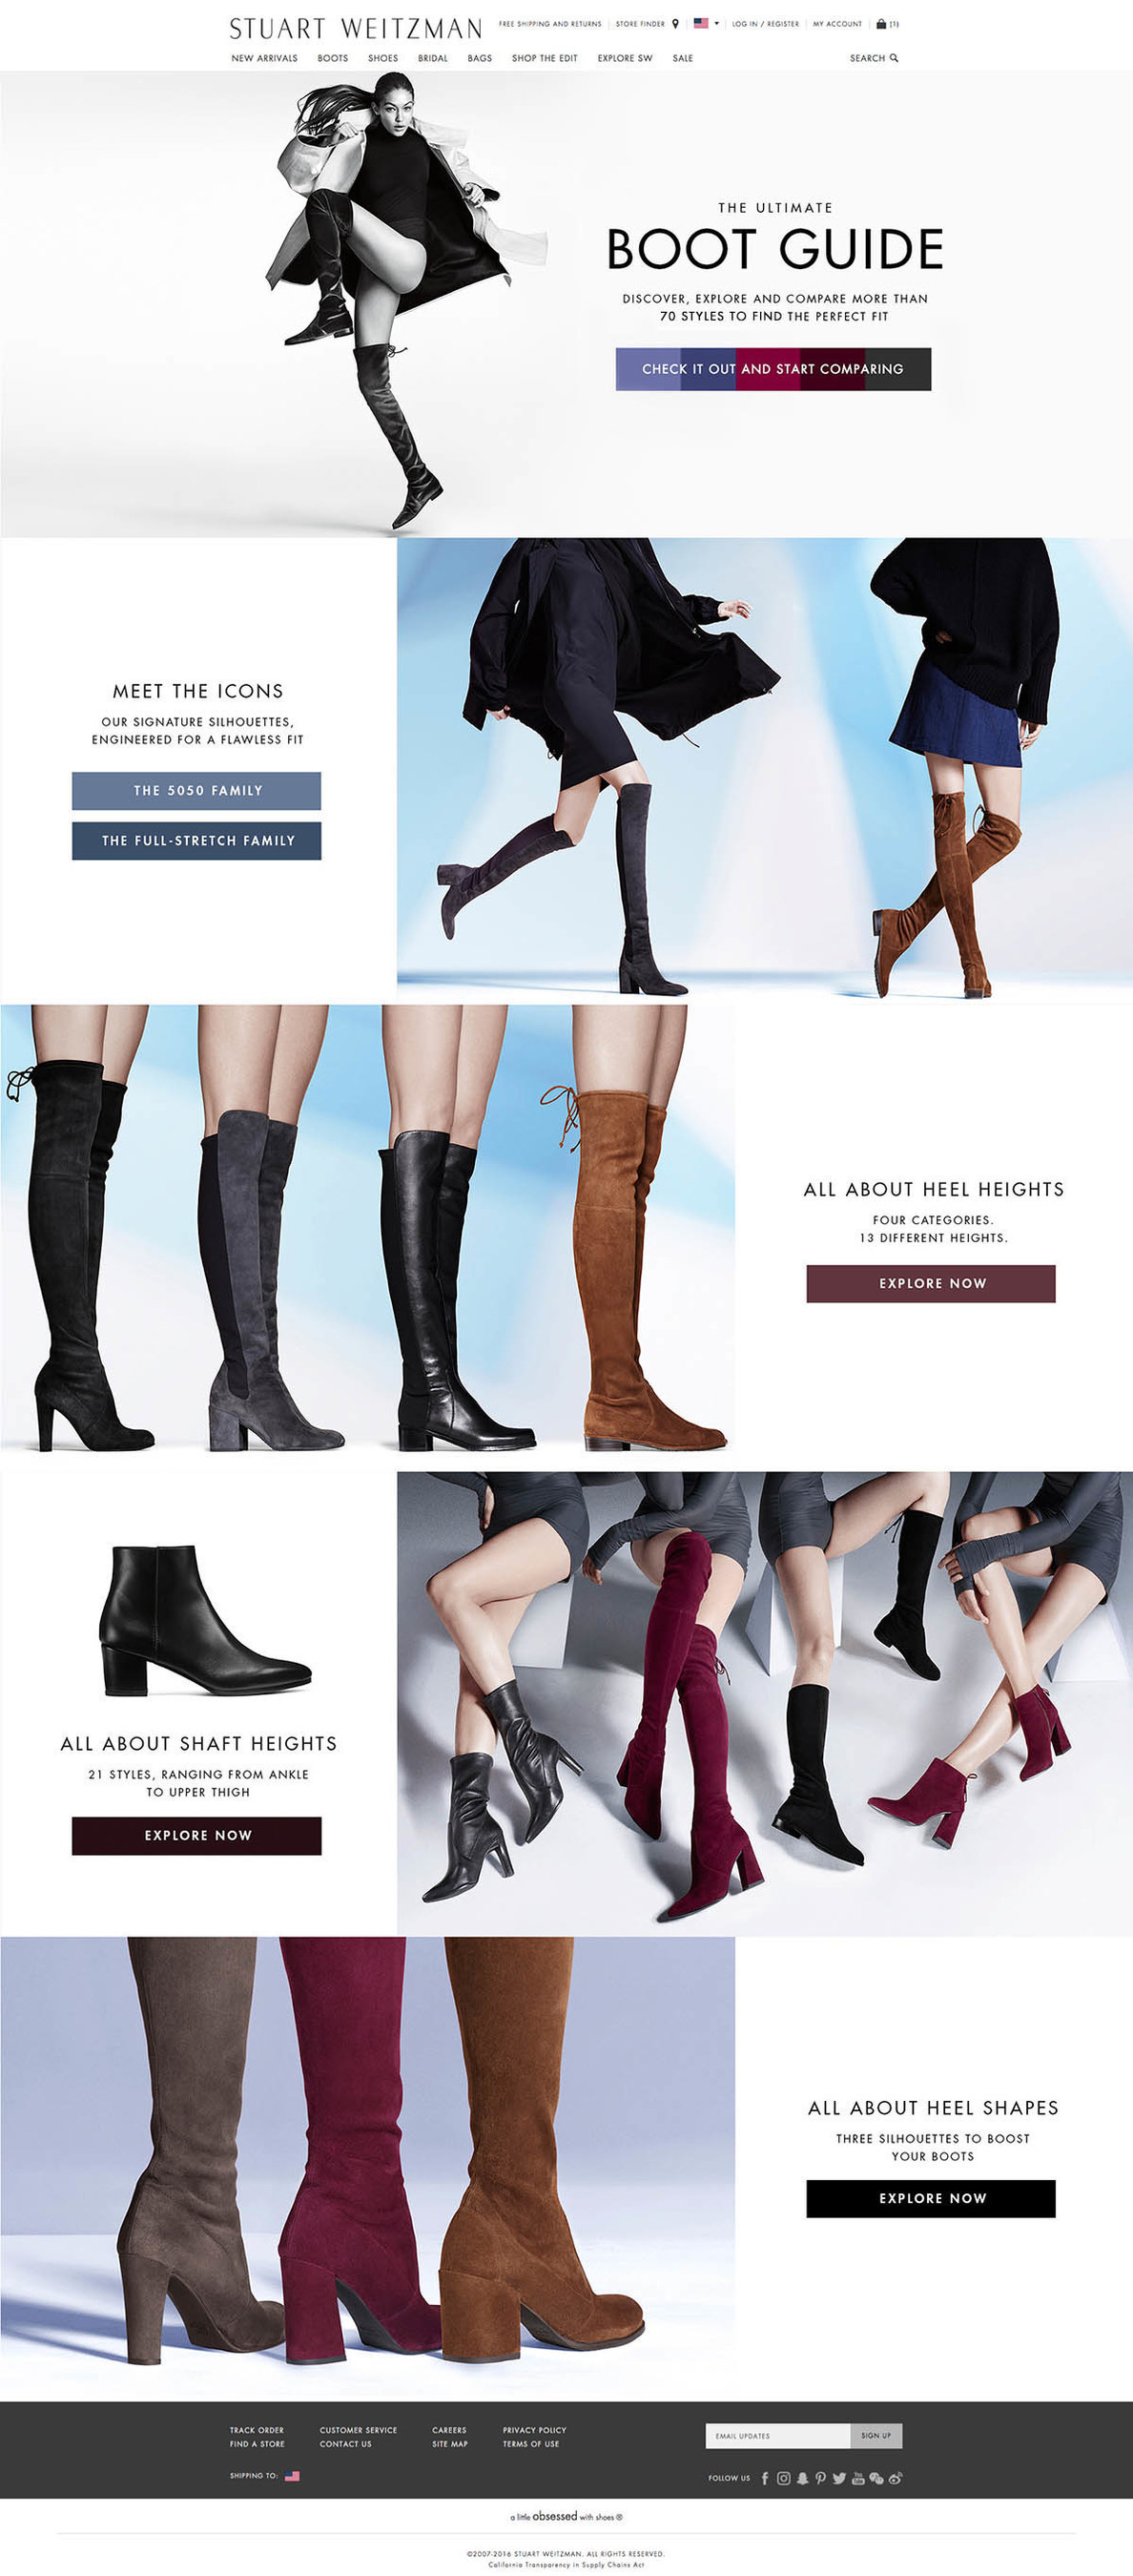 Stuart Weitzman Steps Up its Boot Game: Launches User-Friendly Shoppable Comparison Boot Guide for the Fall 2016 Collection on www.stuartweitzman.com